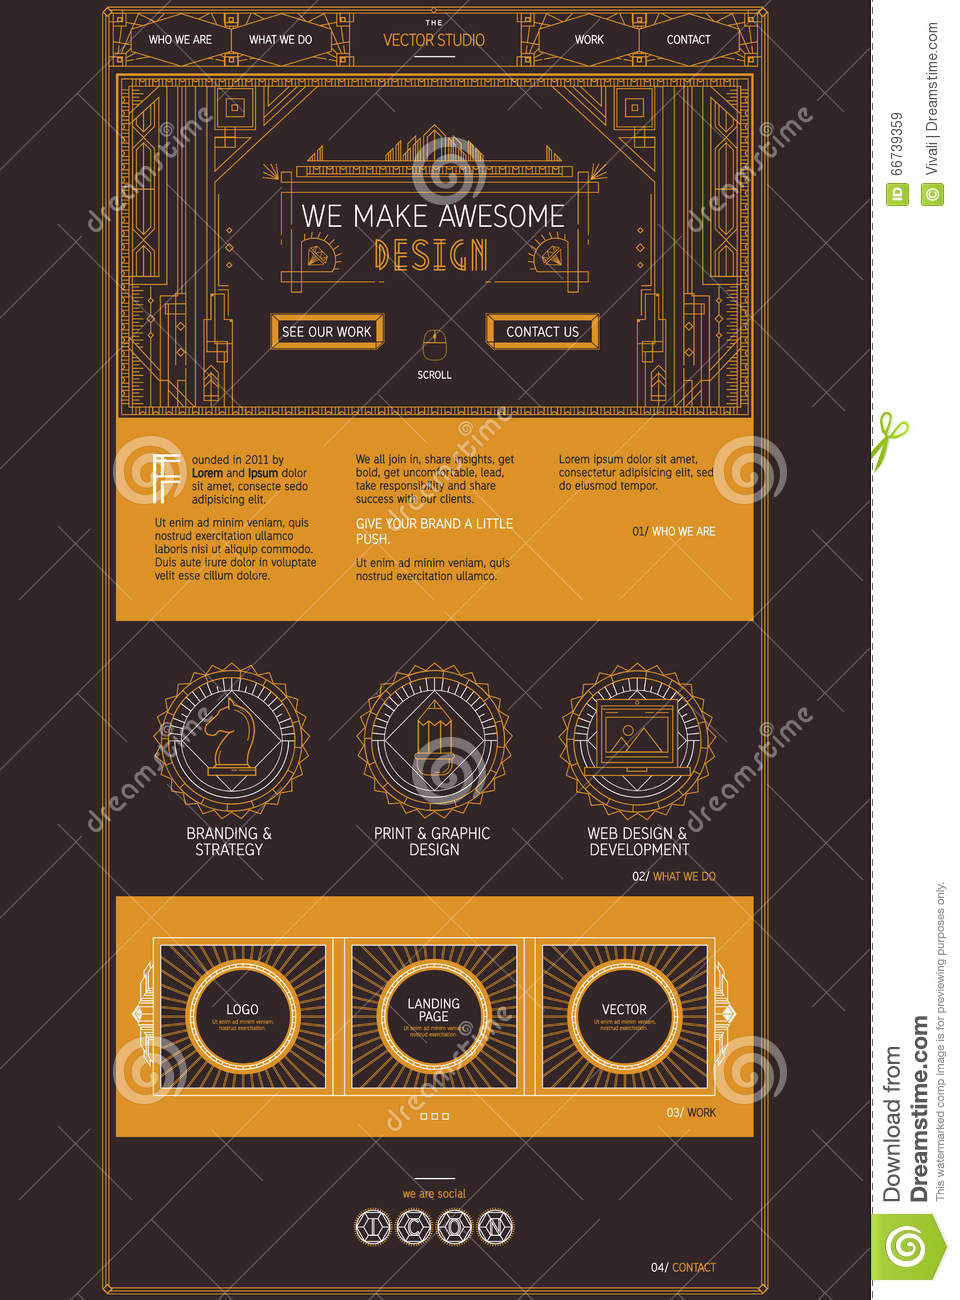 vector one page web site template of creative design studio services design in trendy art deco. Black Bedroom Furniture Sets. Home Design Ideas